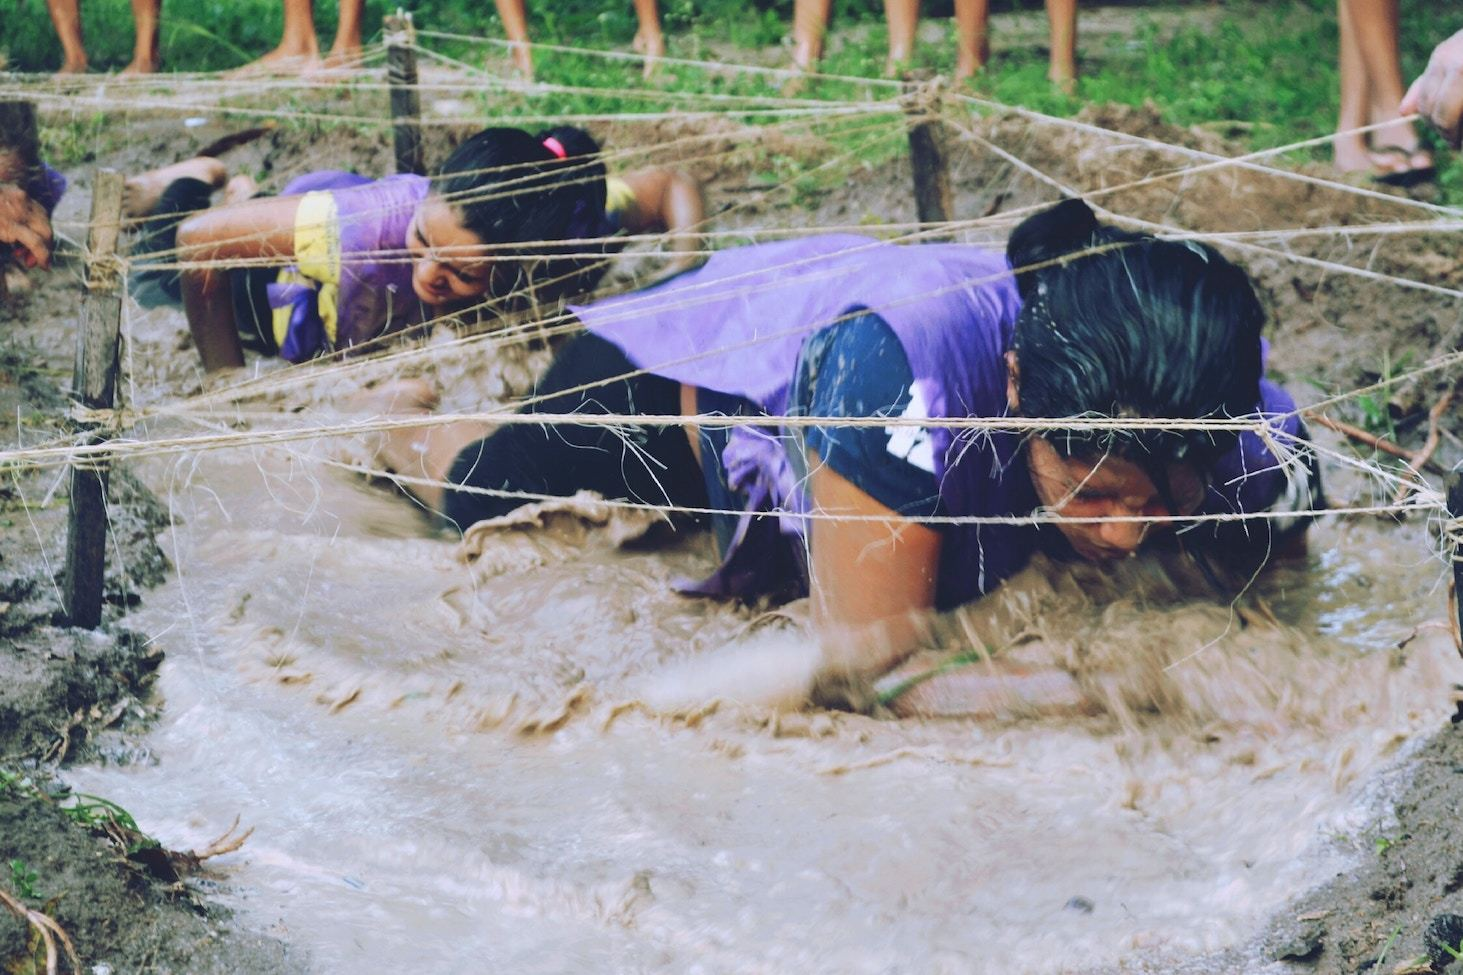 Women crawl through a muddy obstacle course